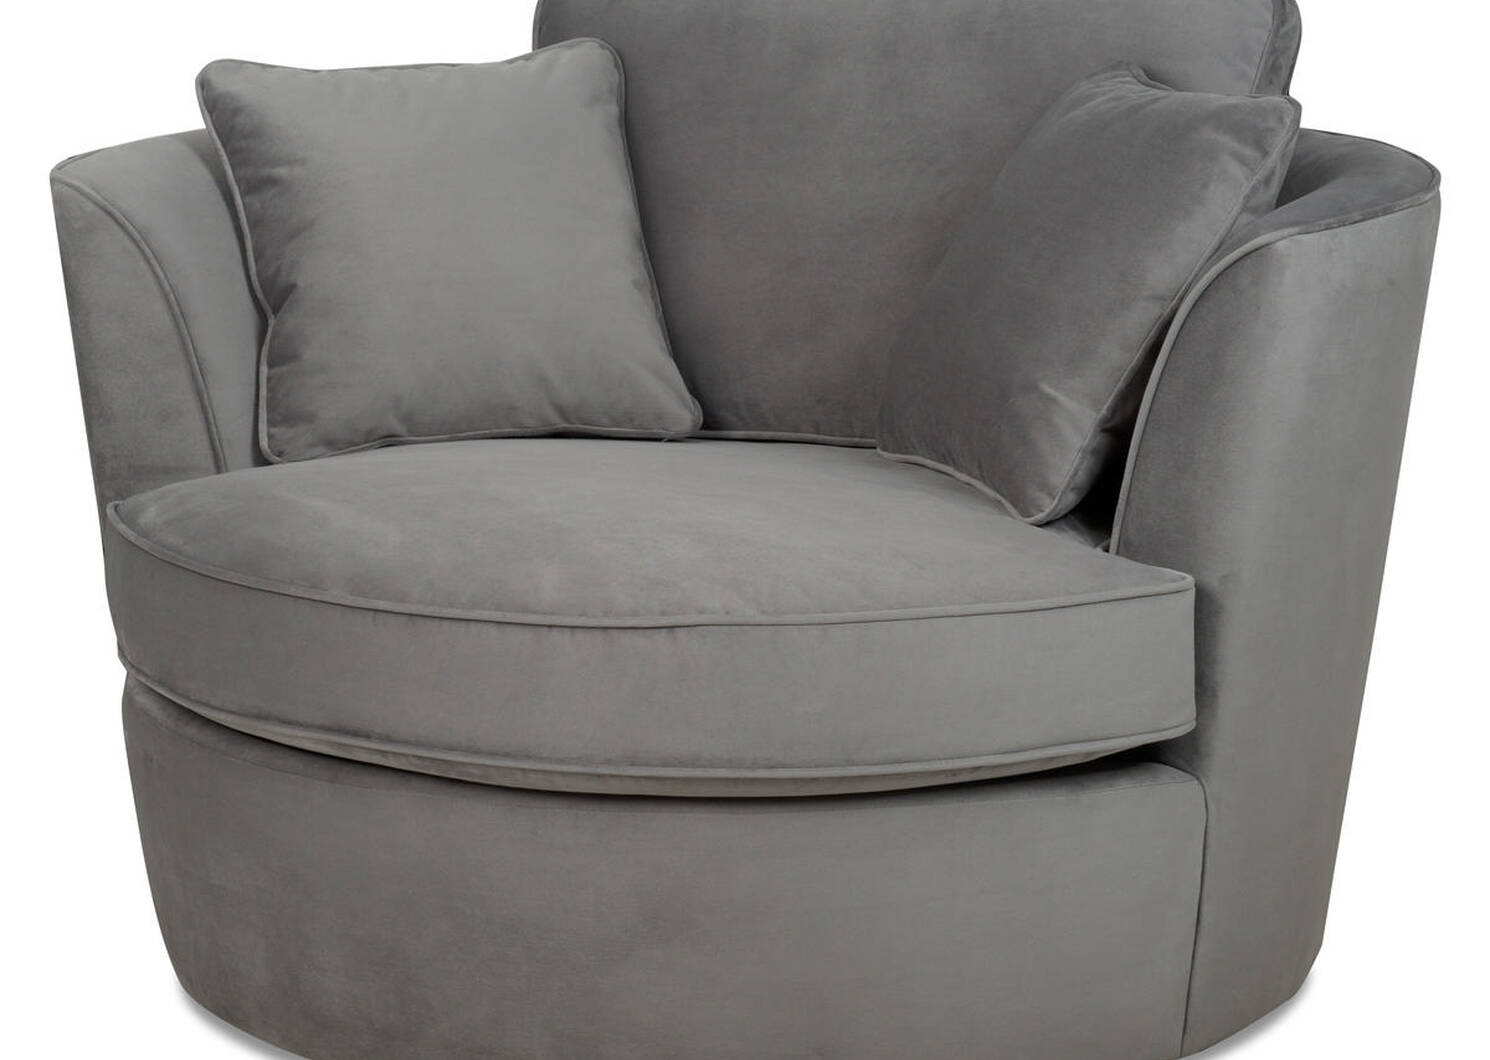 Oriole Chair -Lux Grey